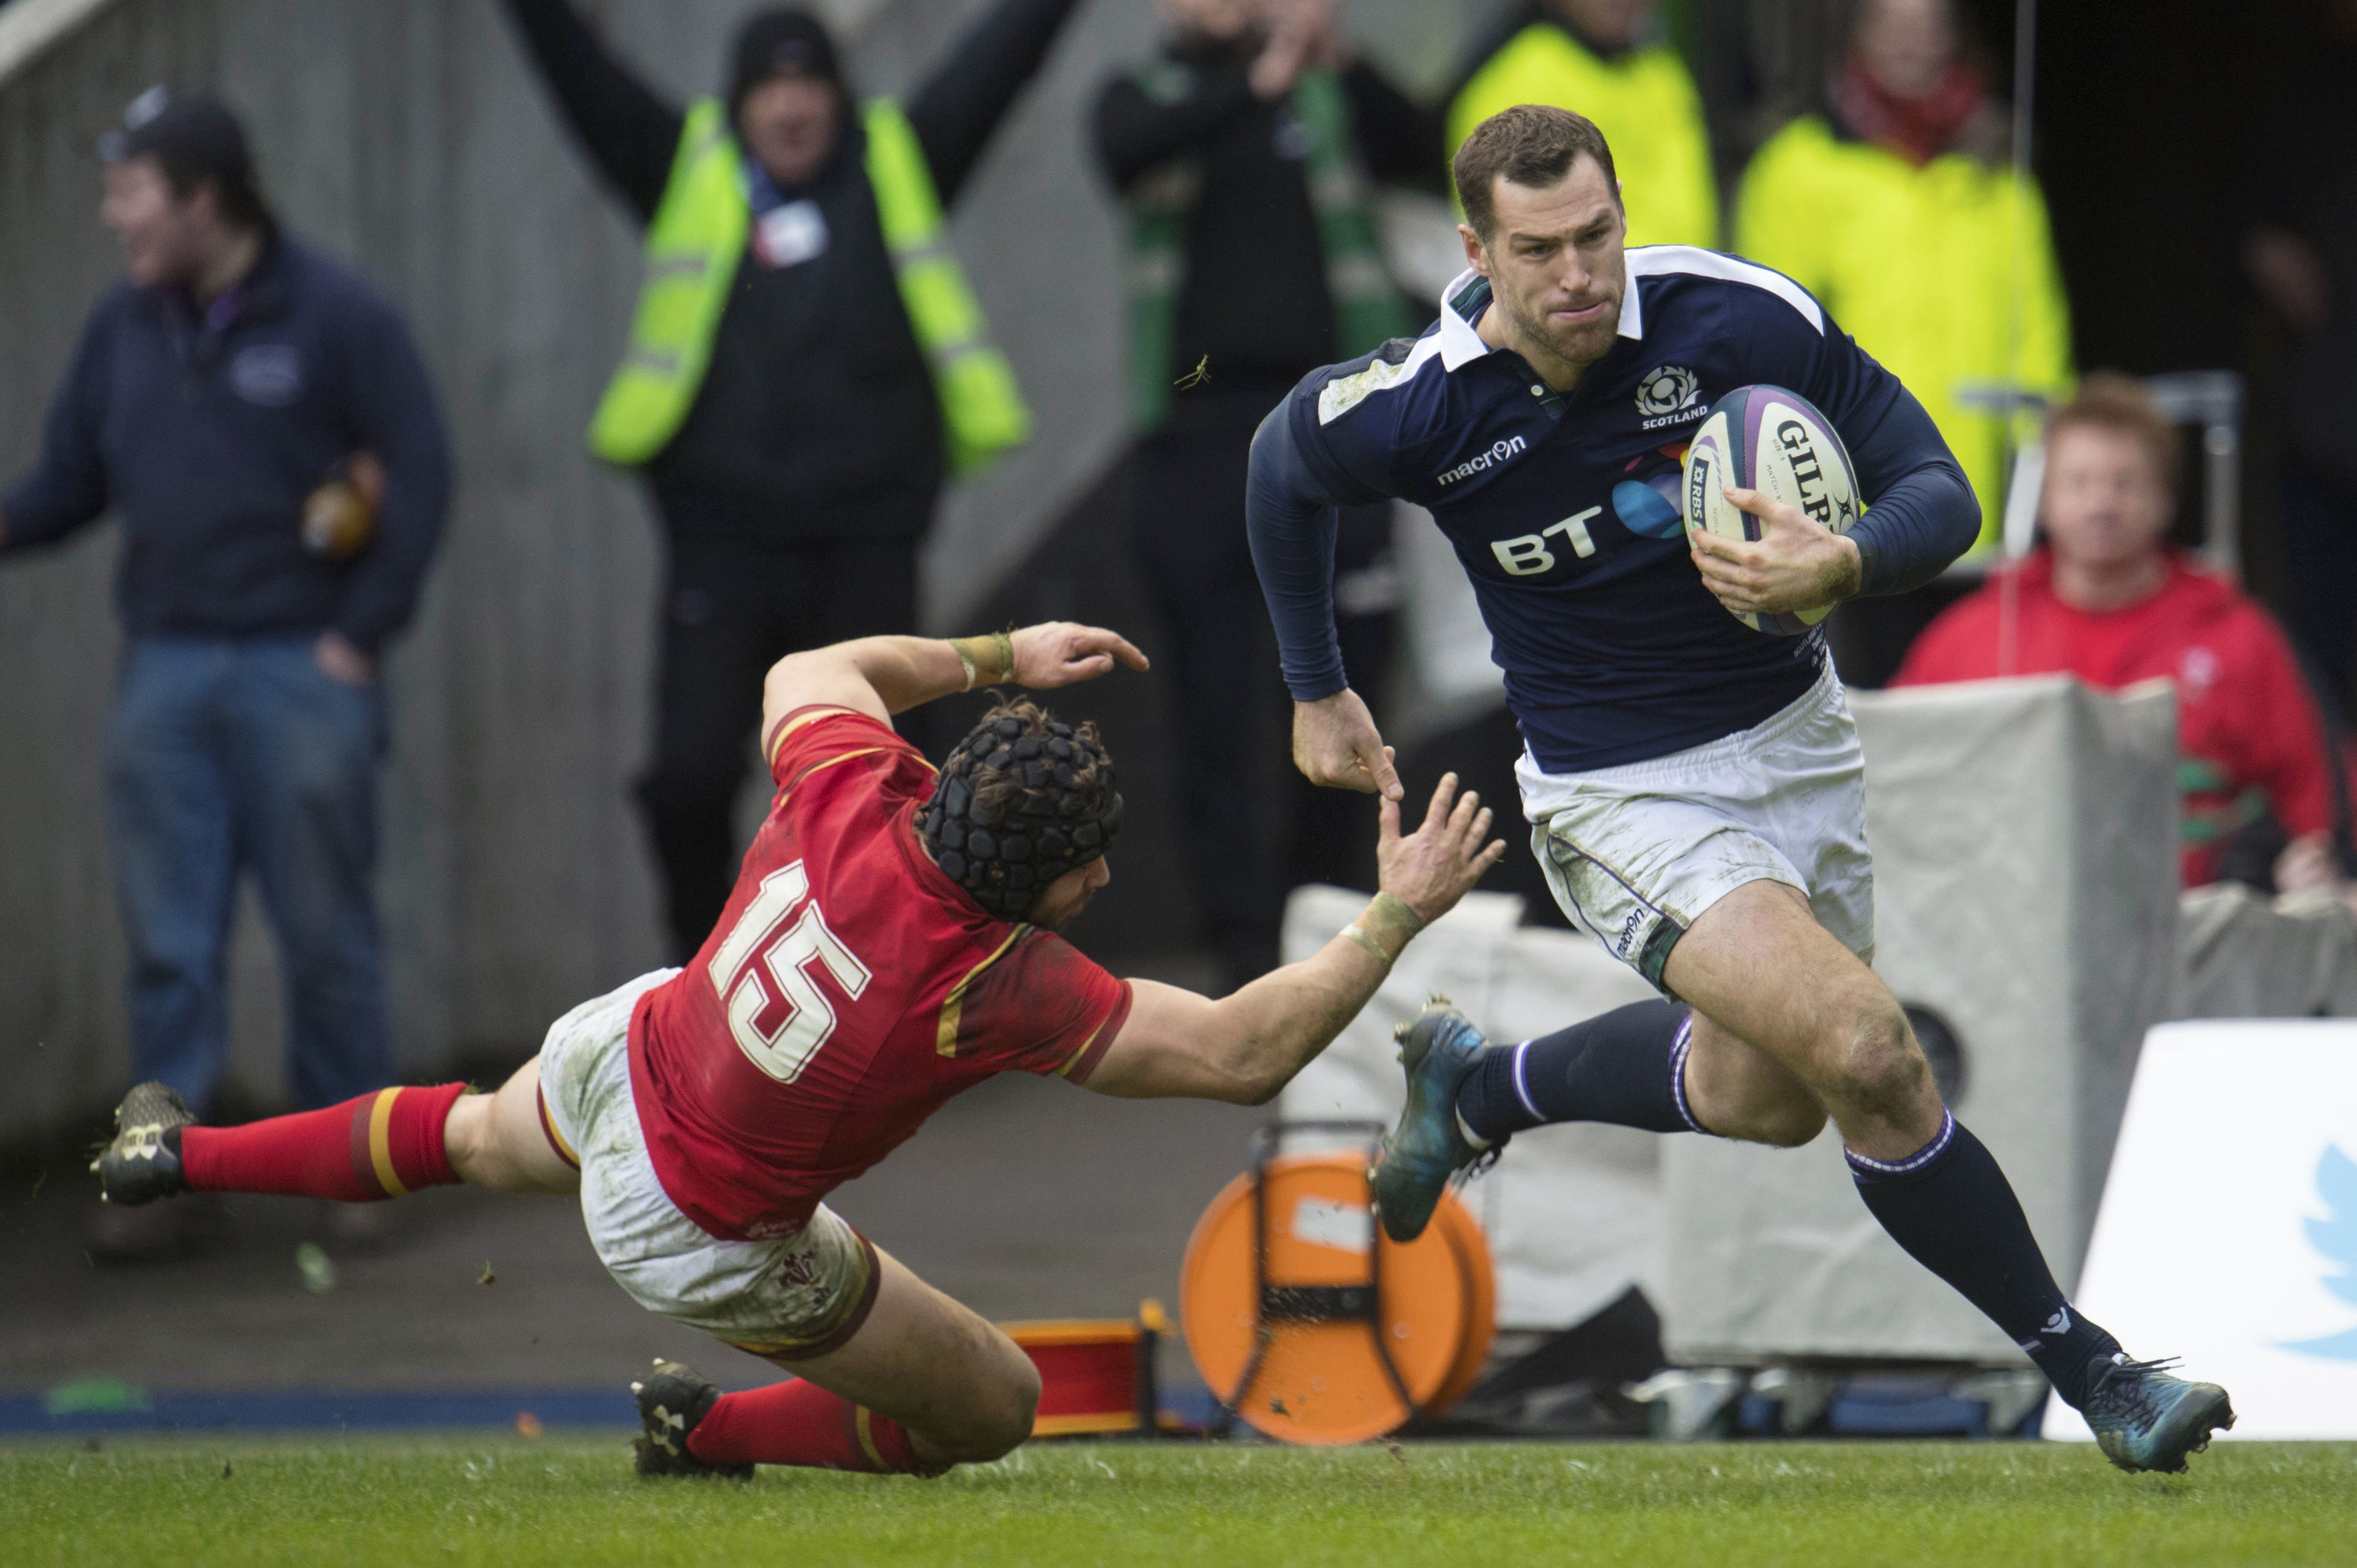 Tim Visser runs through to score the second try for Scotland against Wales.